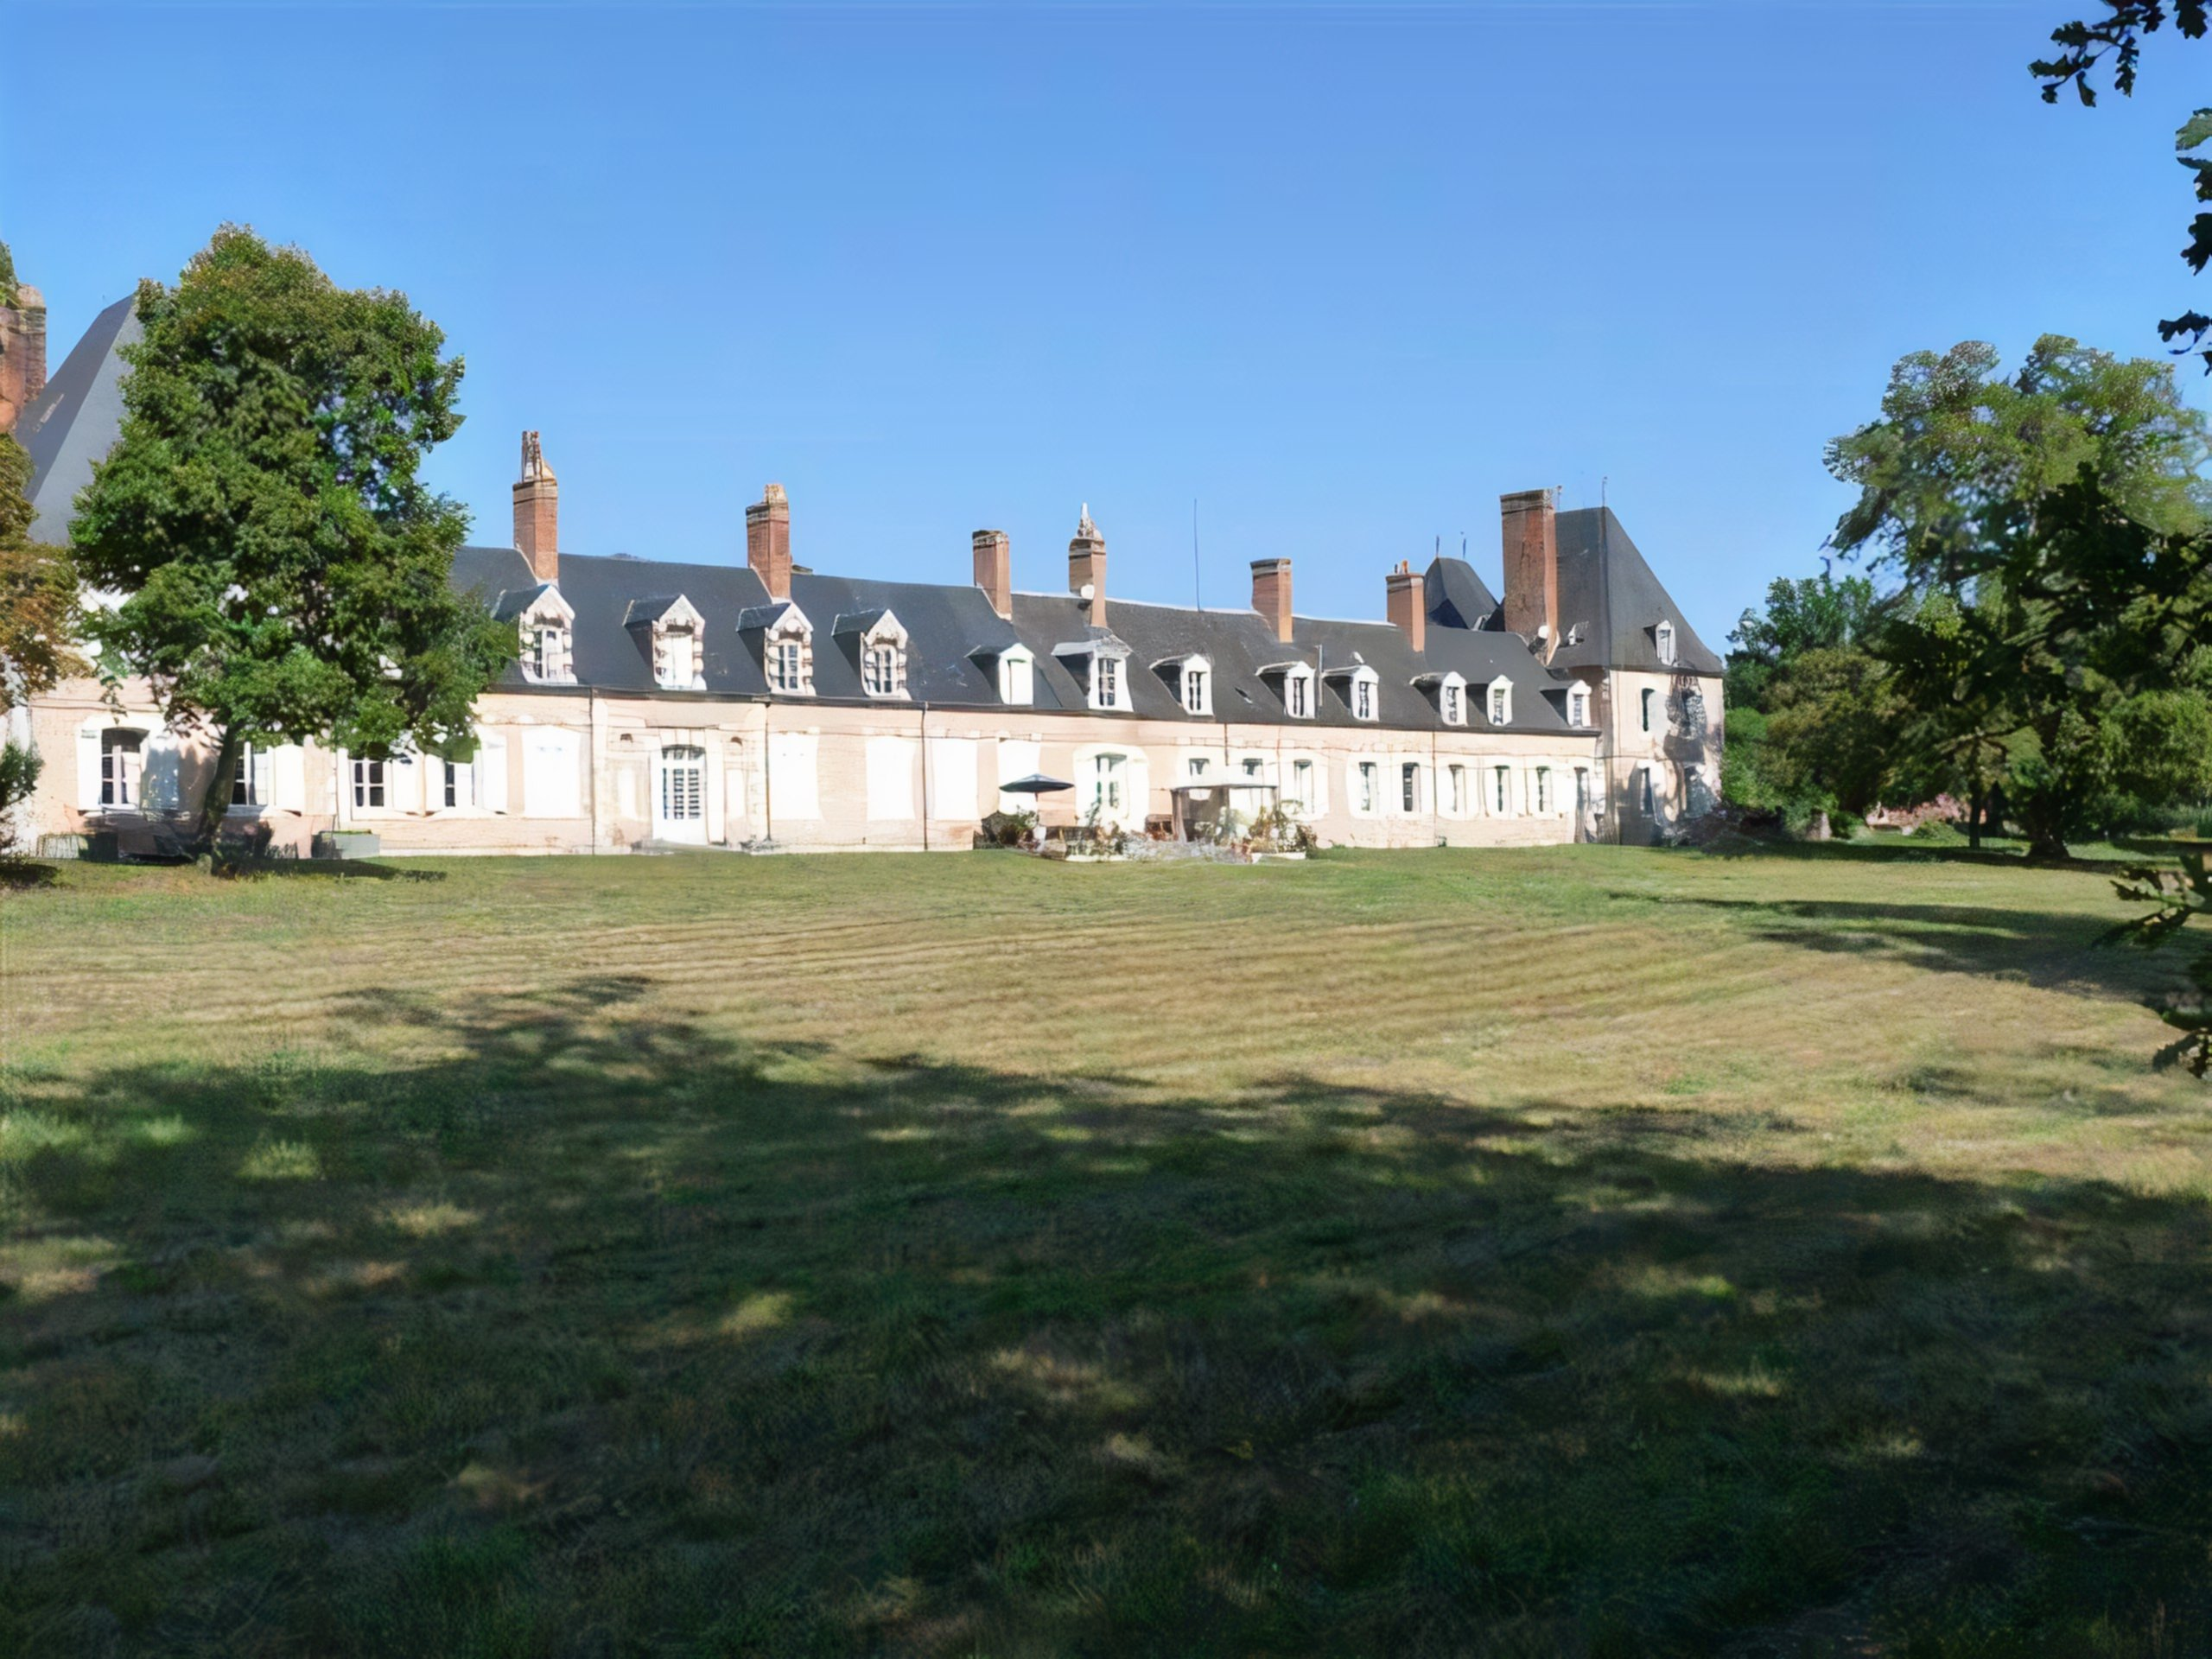 A castle on top of a grass covered field at Chateau-Brinon.